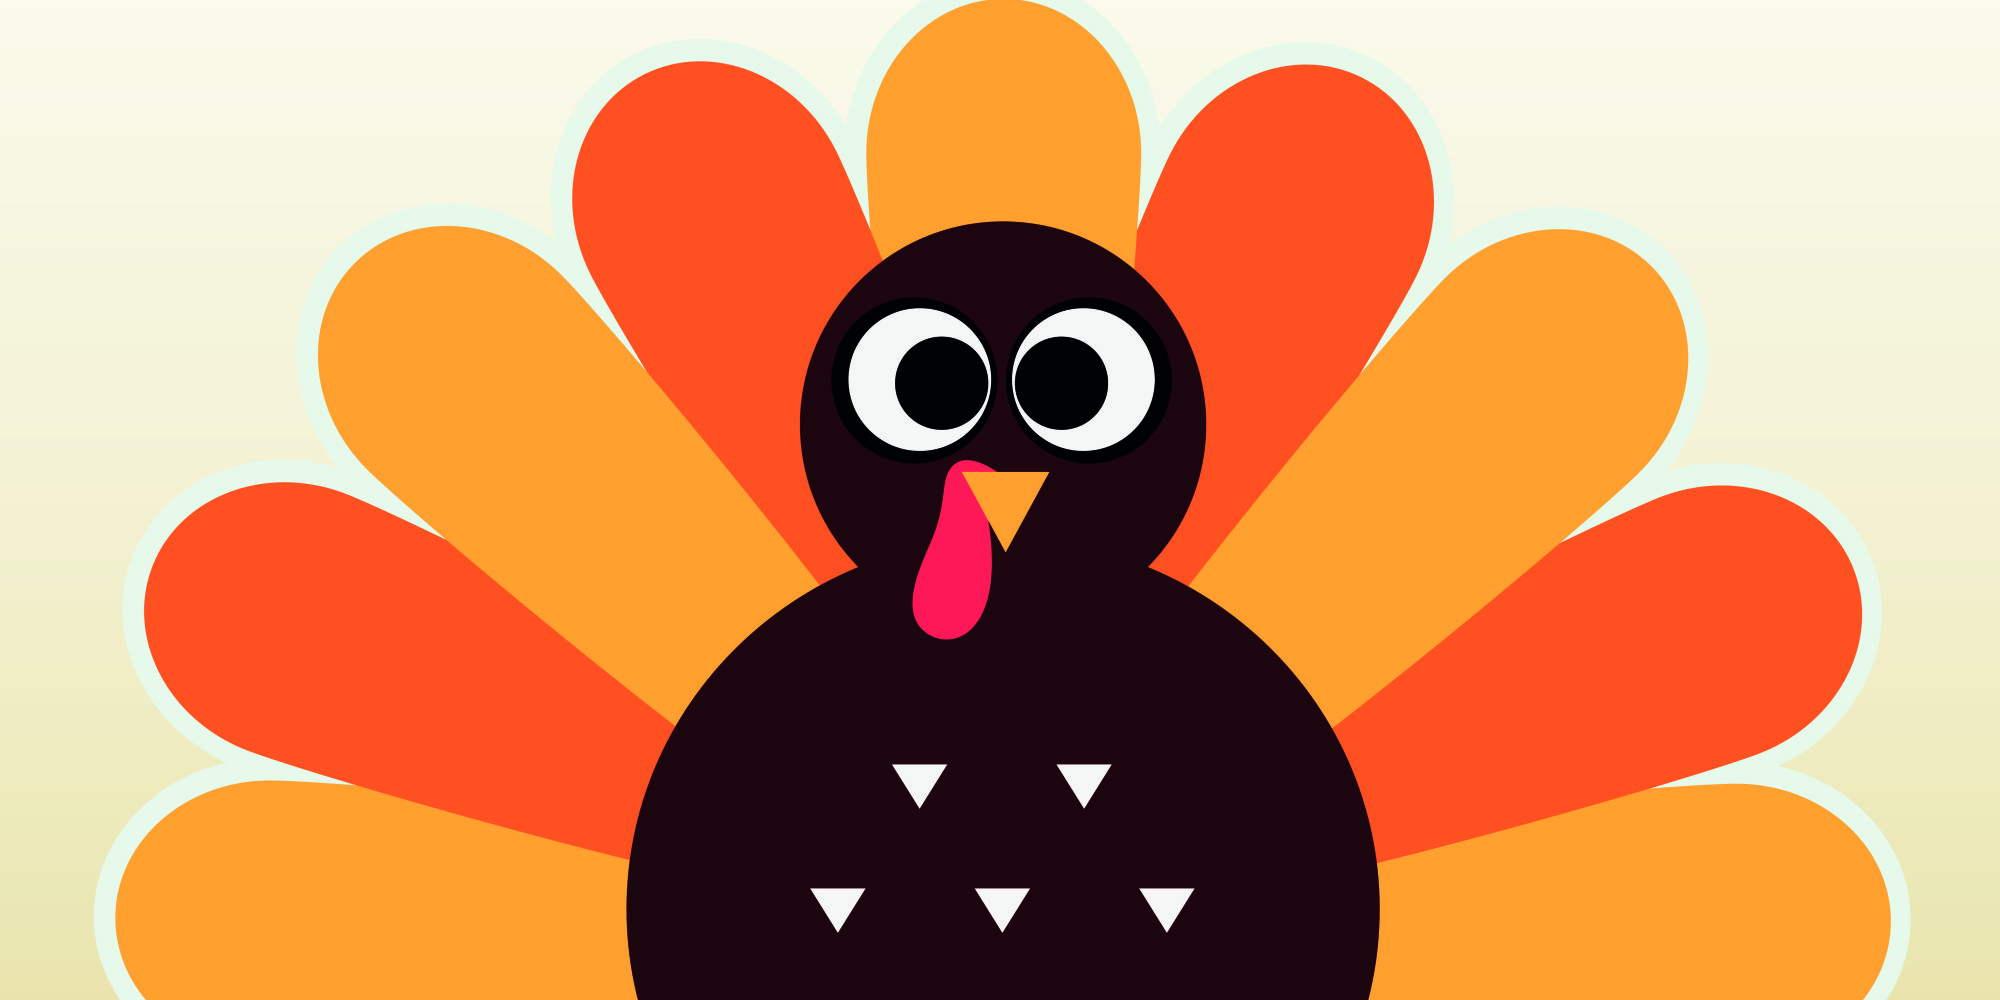 Animated clipart for facebook clipart black and white download Thanksgiving Clipart For Facebook | Free download best Thanksgiving ... clipart black and white download